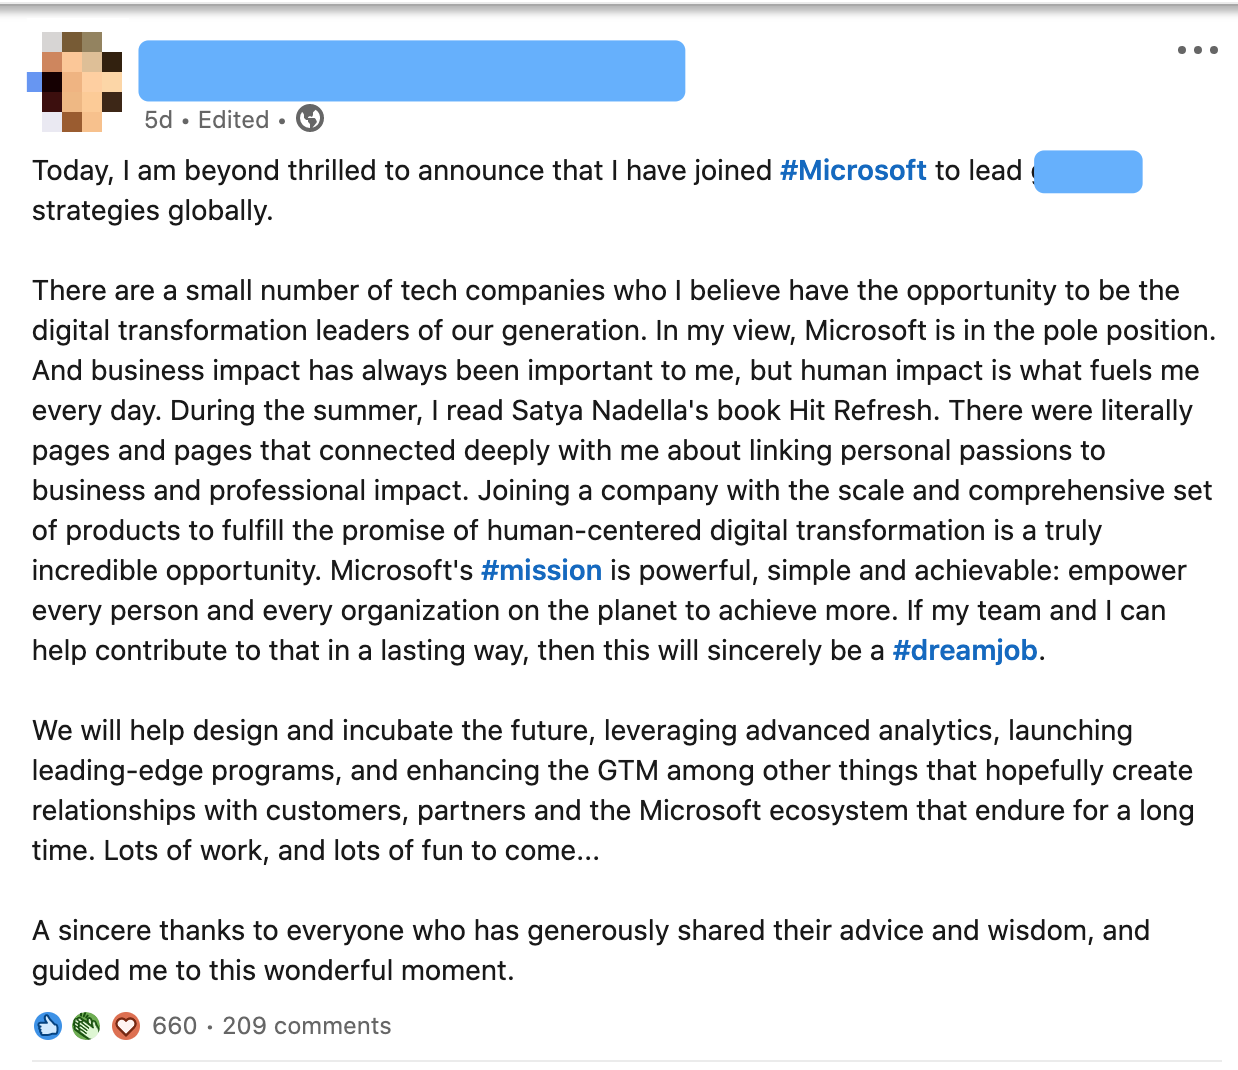 Announcing a new job on LinkedIn in a post, while thanking your network